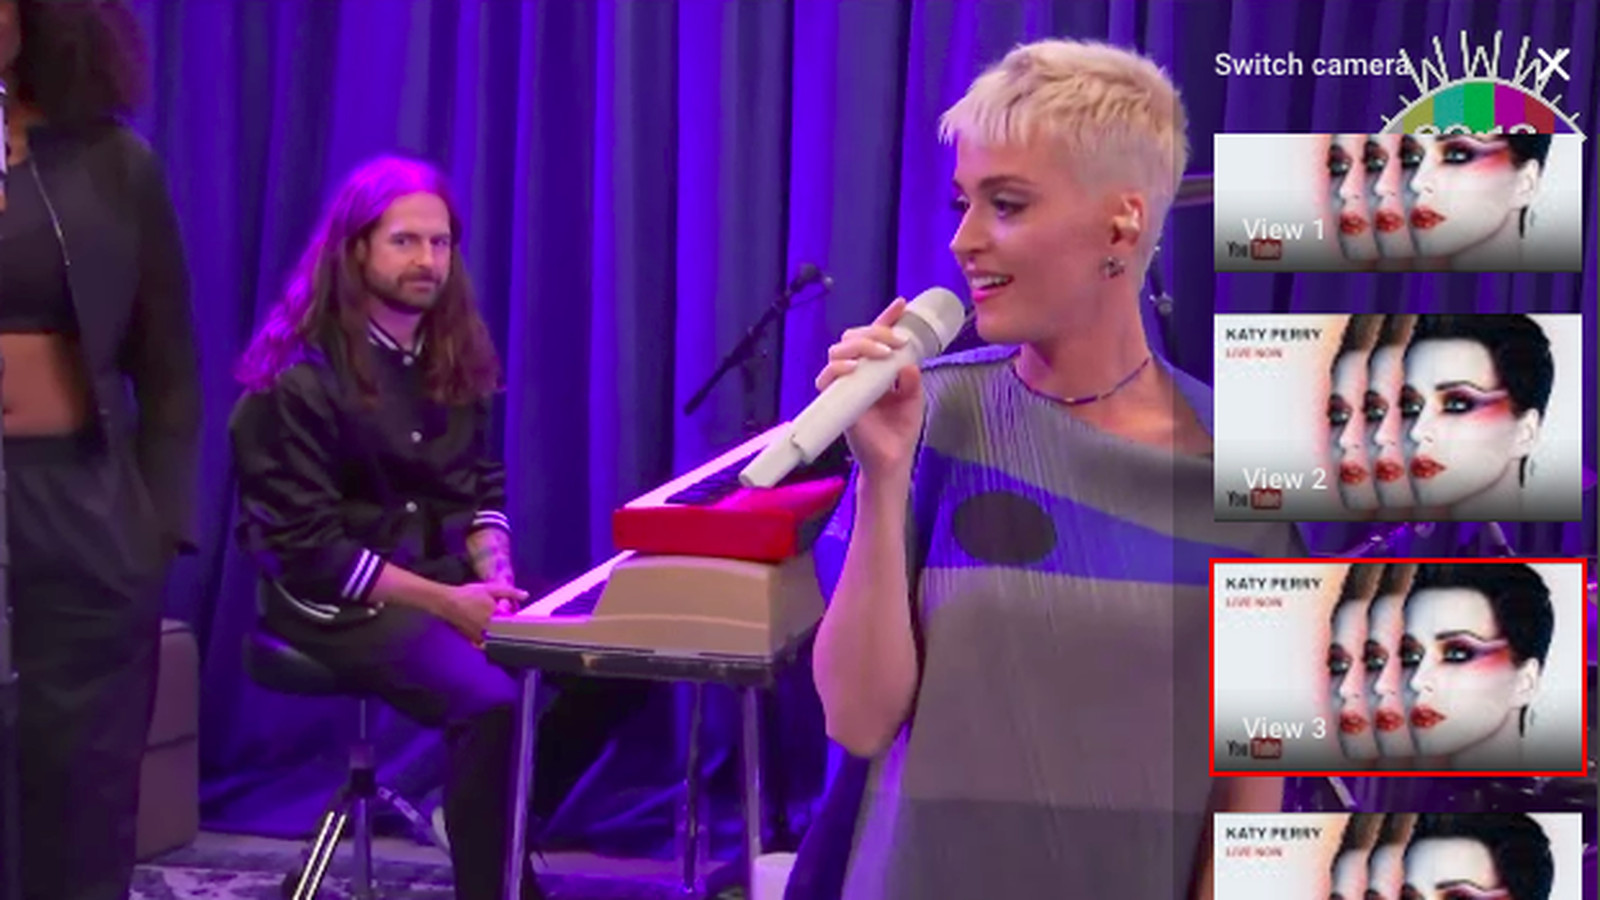 Katy Perry is livestreaming her entire weekend to promote her new album